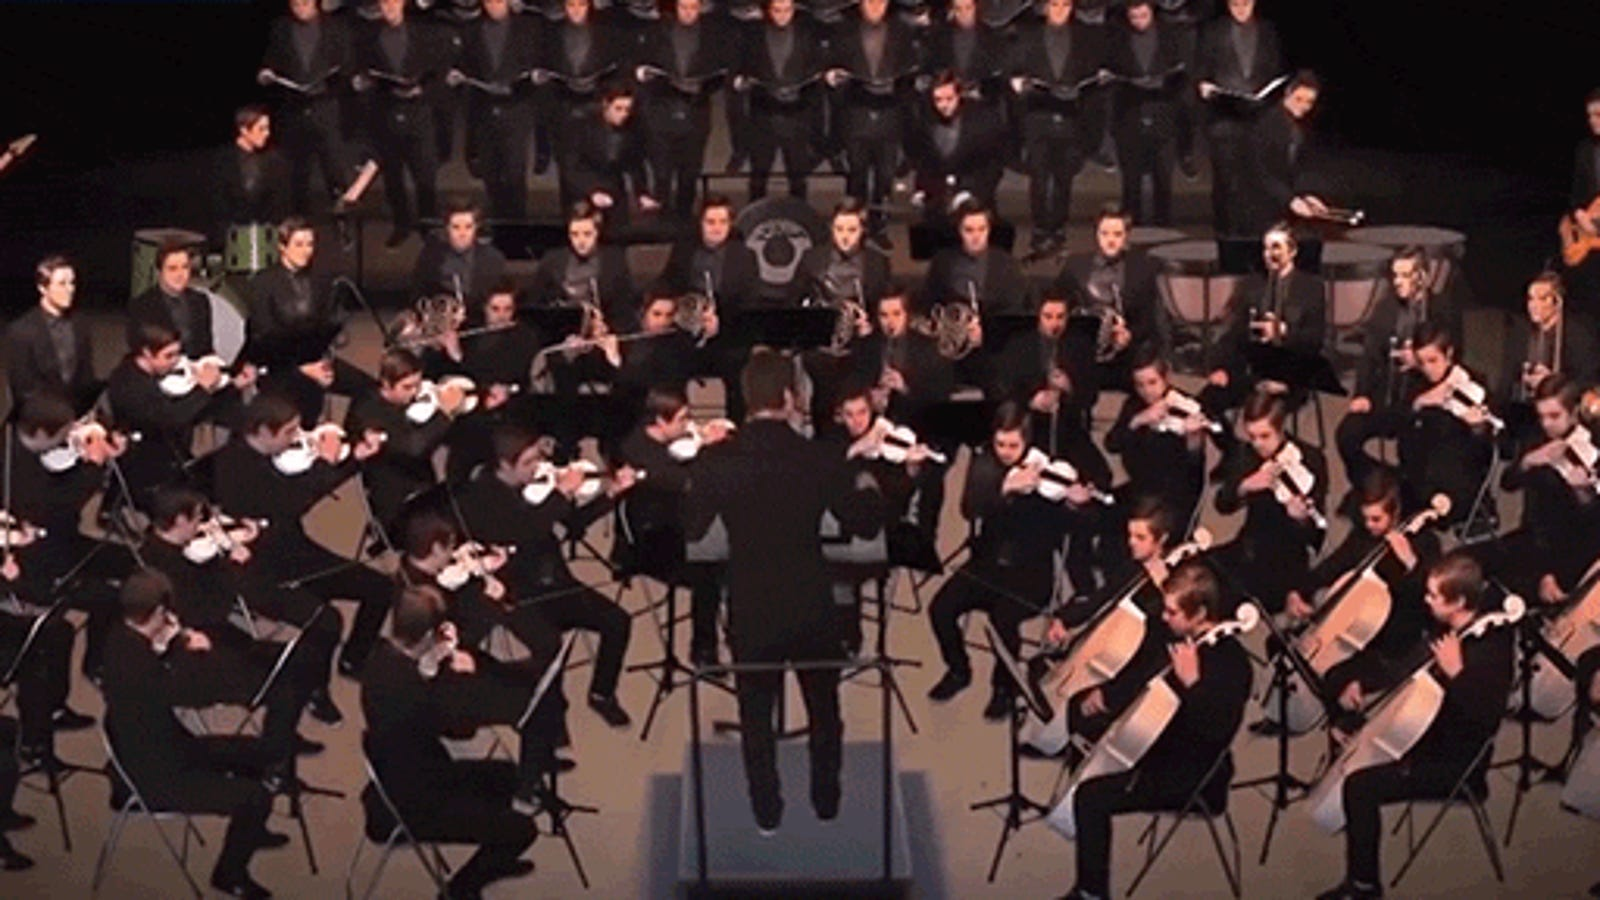 Watch a musician play every instrument in a 70-person orchestra at once